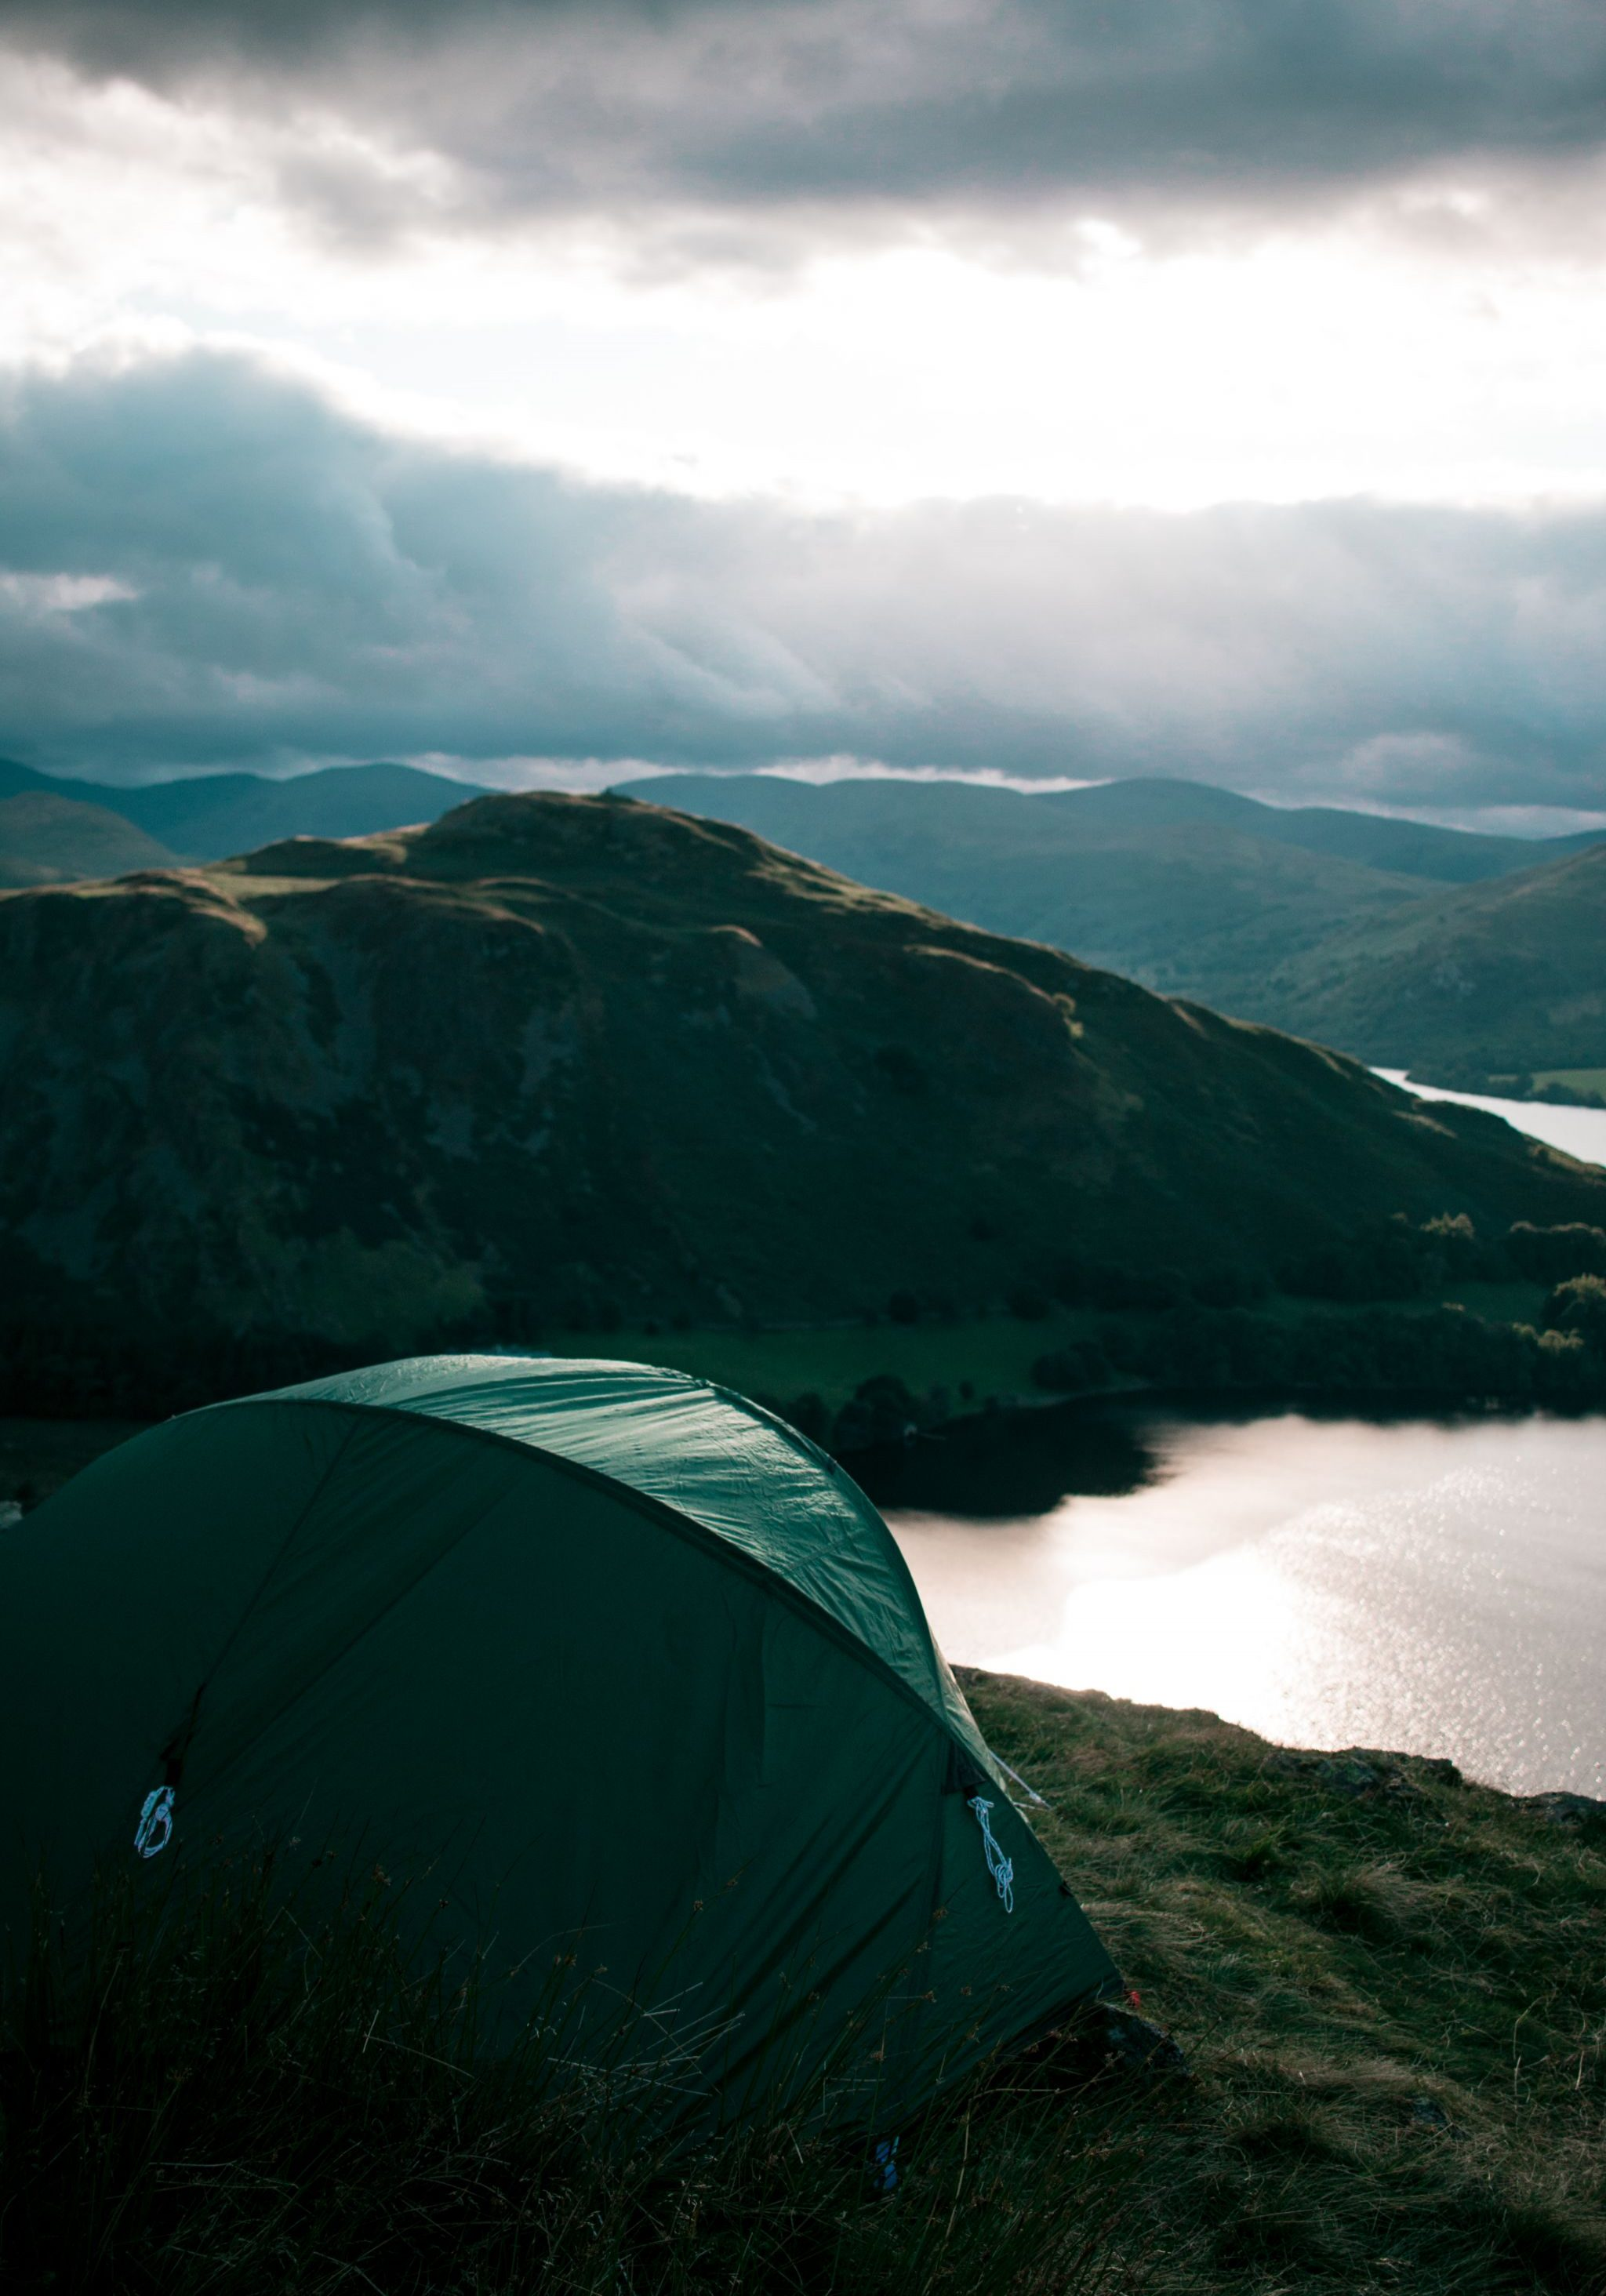 wild-camping-guide-lake-district-dusk